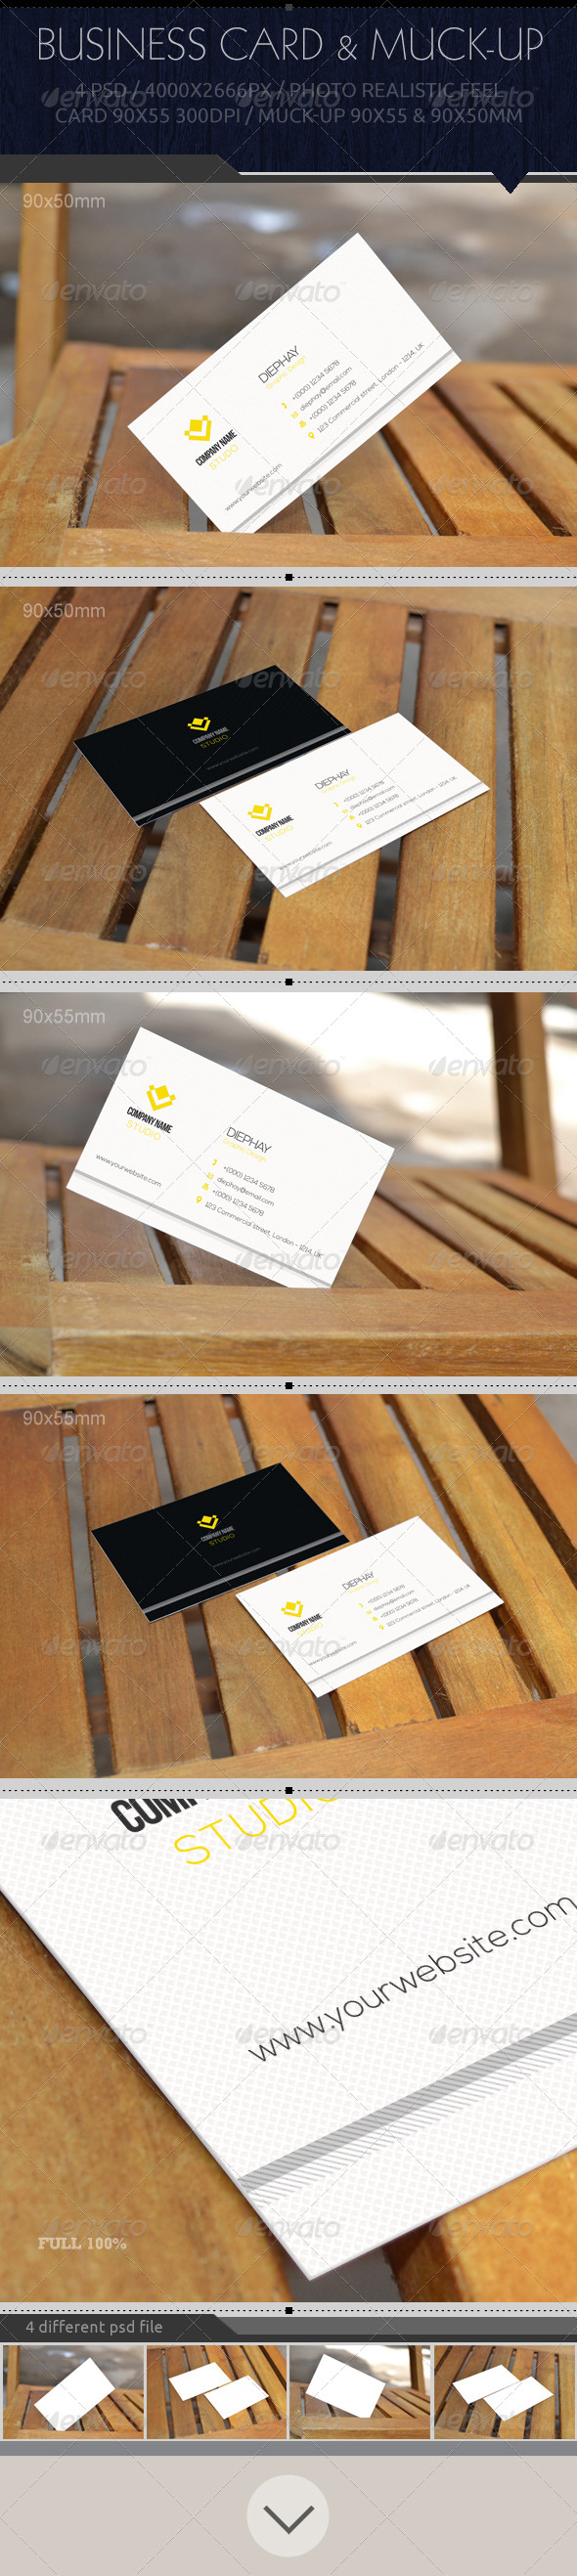 GraphicRiver Bsiness Card Mock-Up 7782228